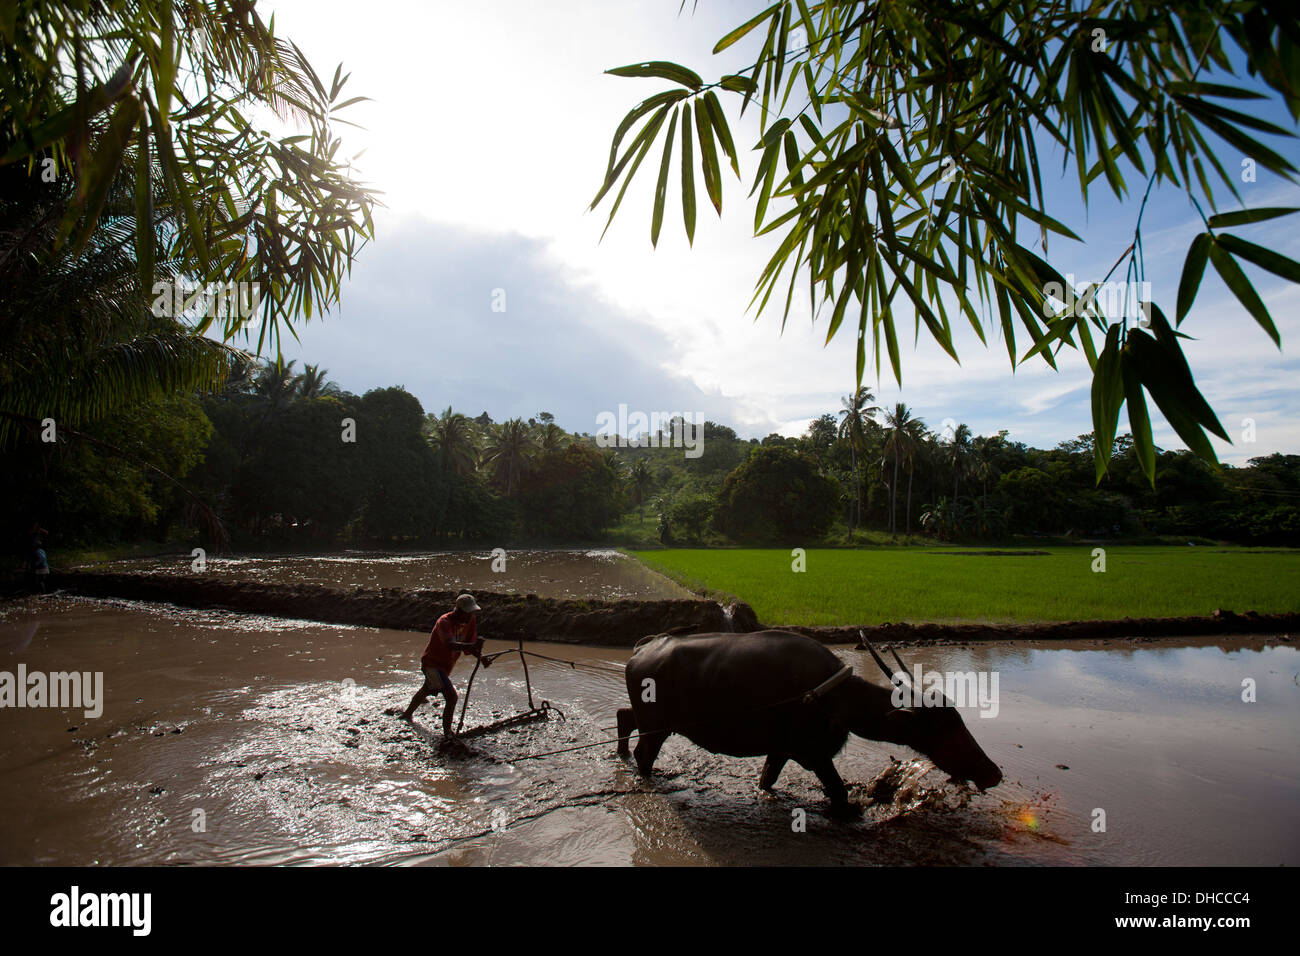 A Filipino farmer drives a carabao while working to level a rice field near Mansalay, Oriental Mindoro, Philippines. Stock Photo